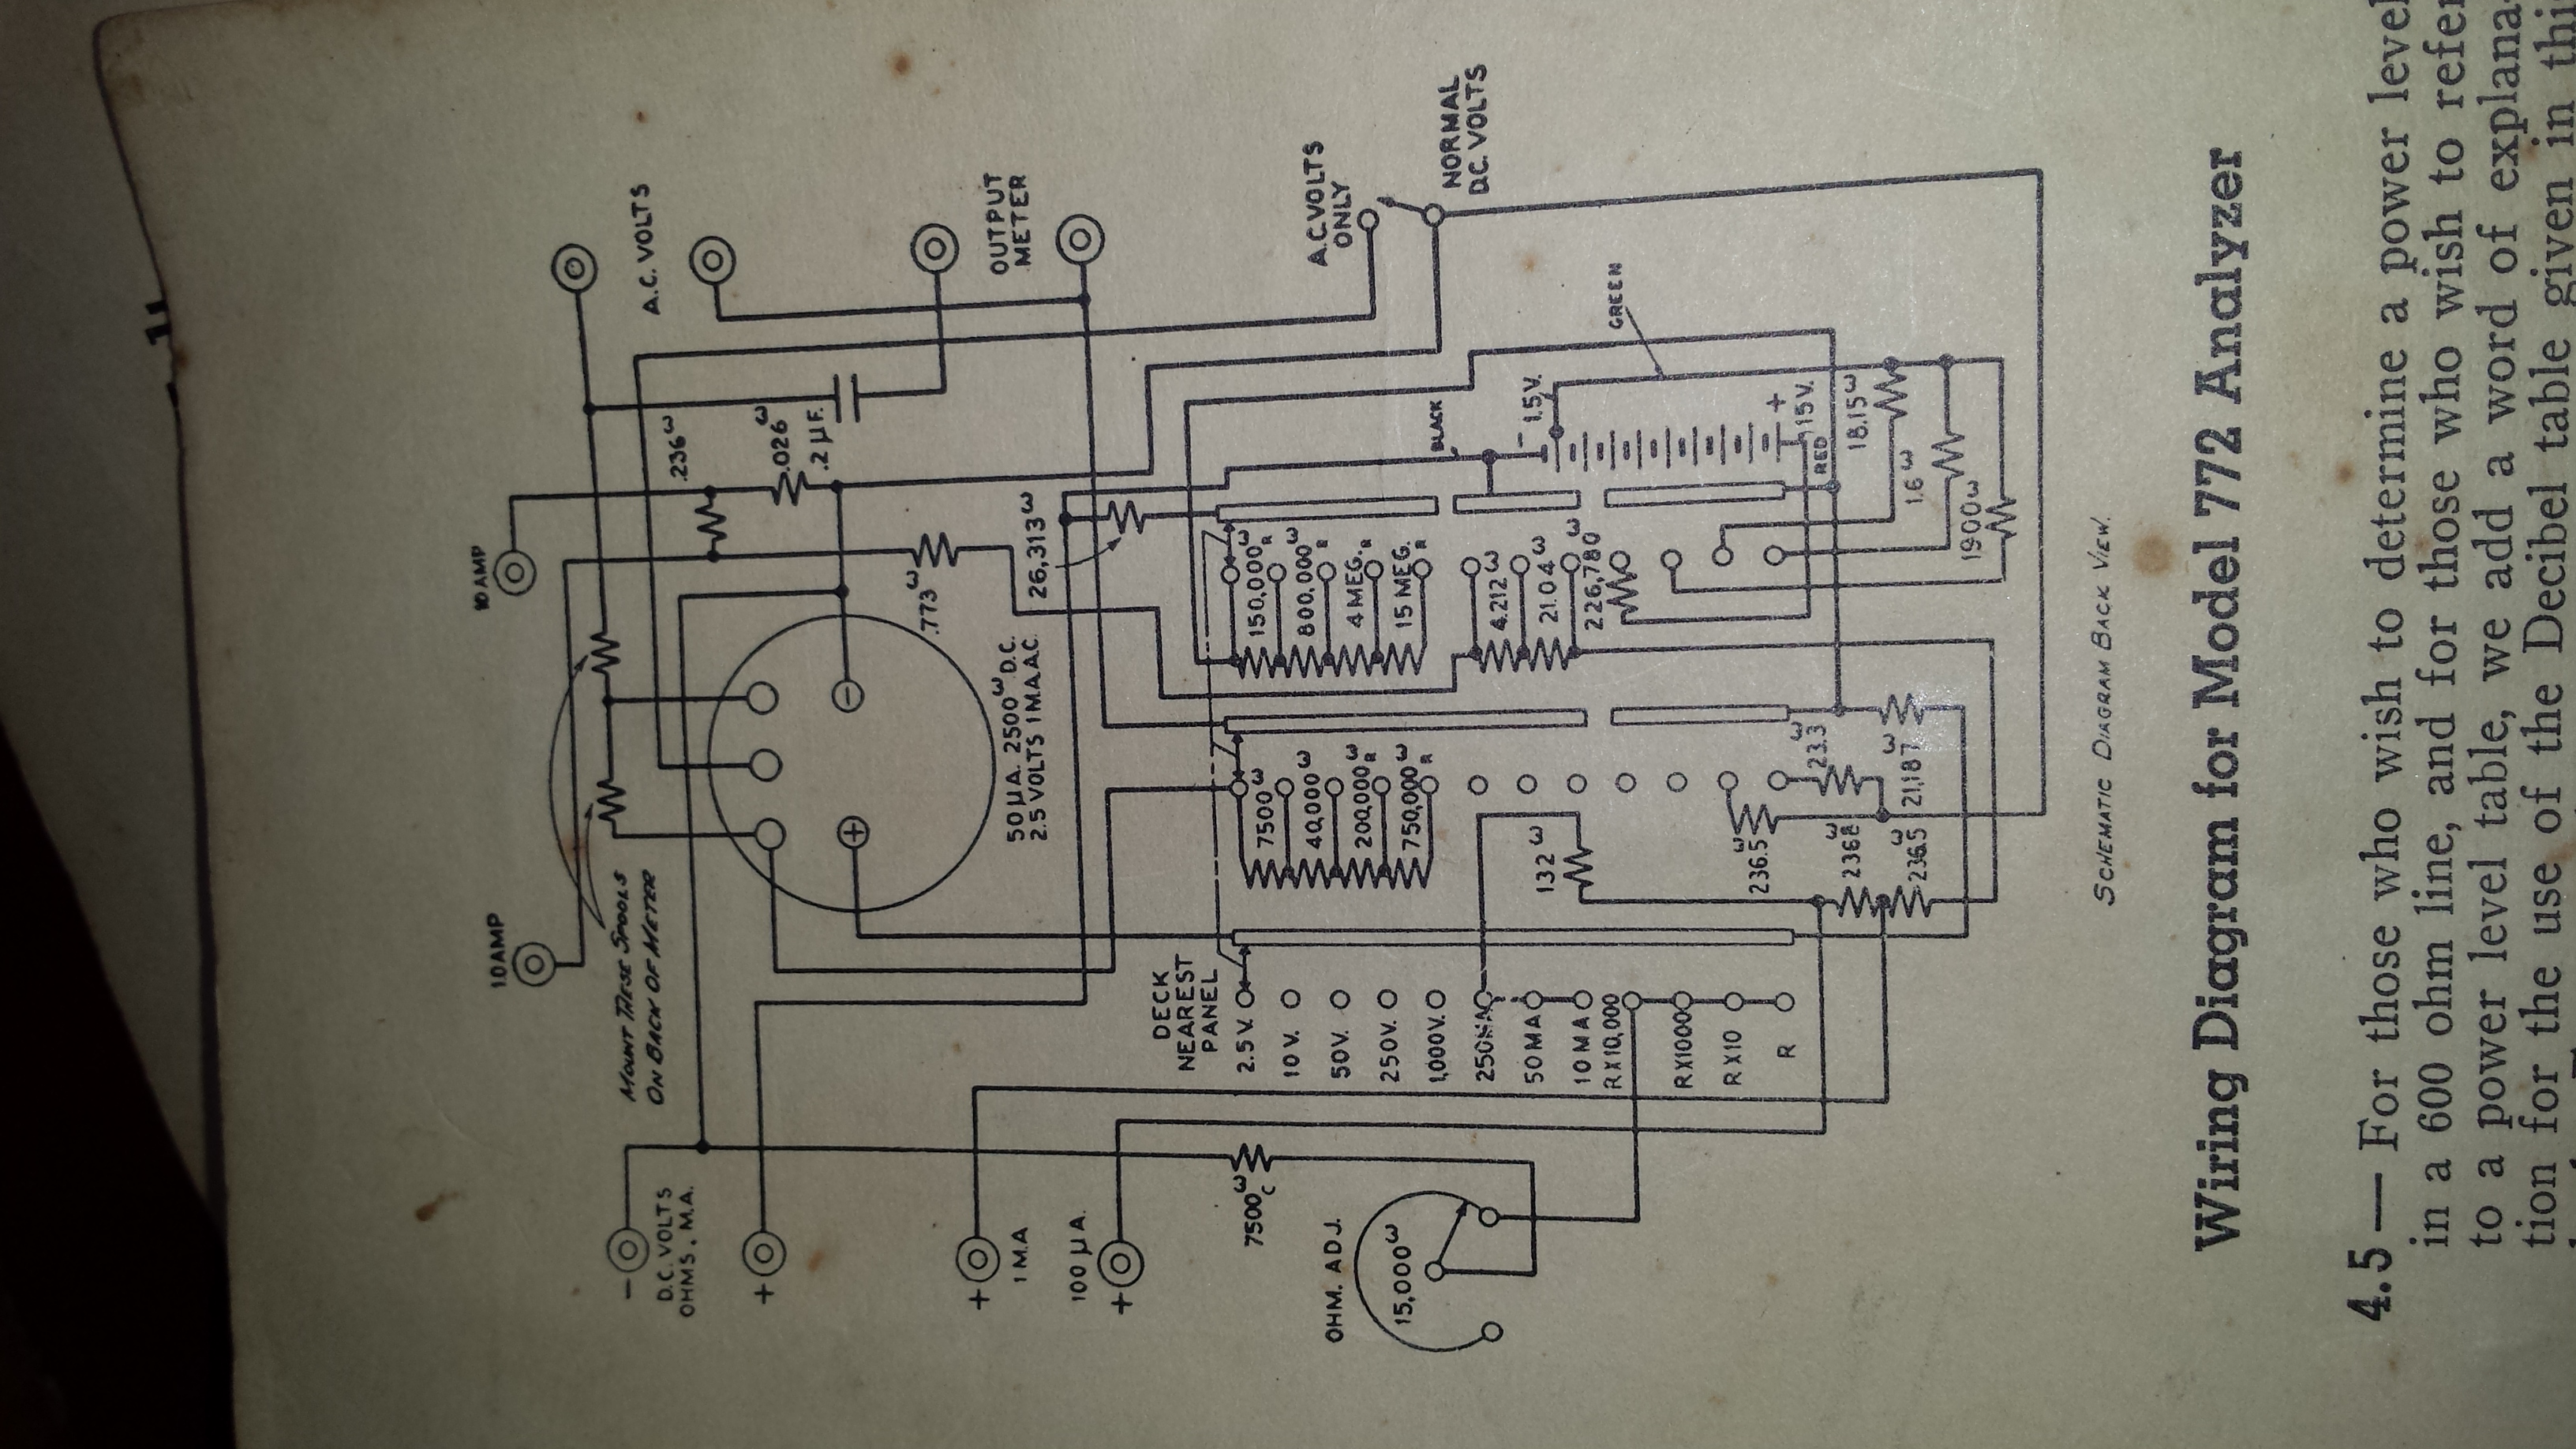 Weston Super Sensitive Analyzer Kg4cyx Wiring Diagram Image